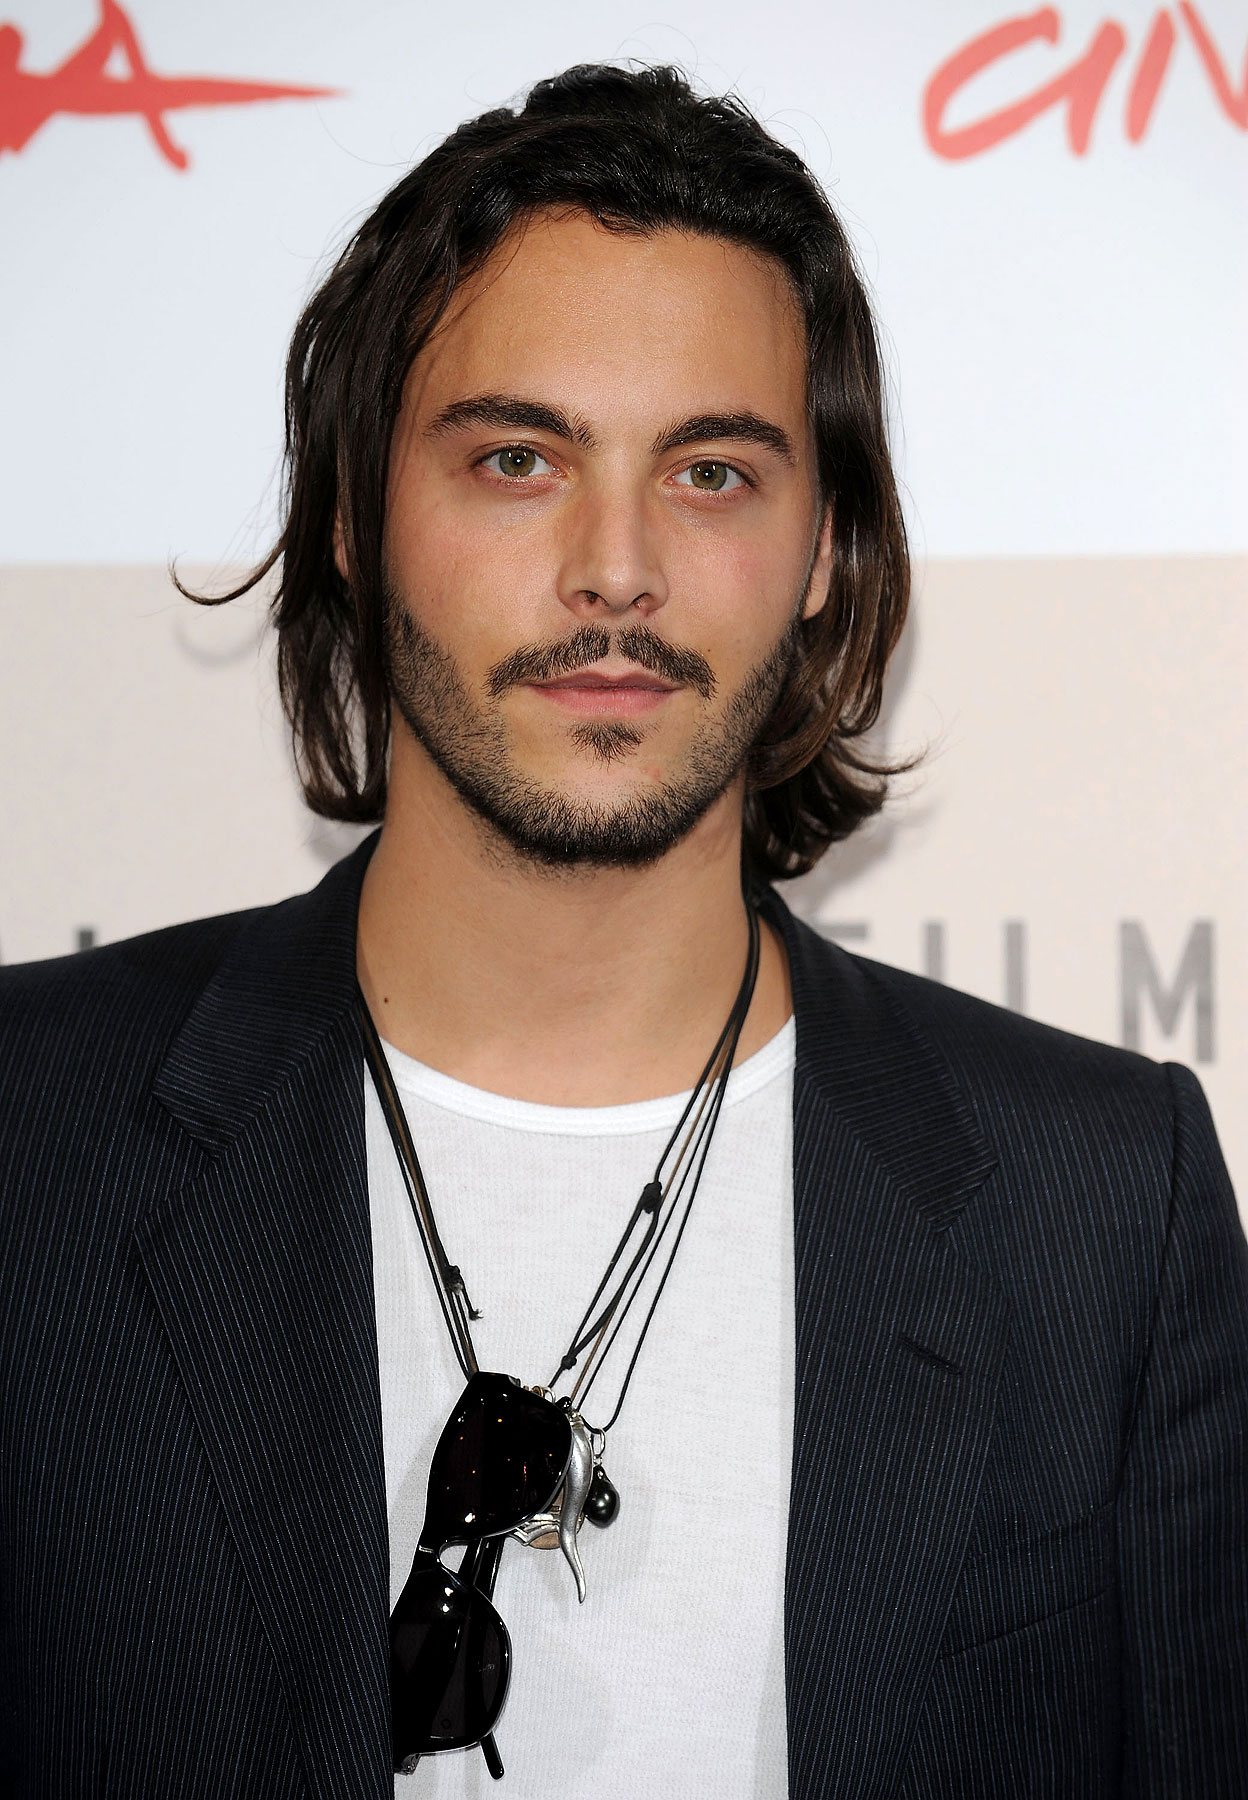 PHOTO GALLERY: Eclipse's New Cast Member: Jack Huston